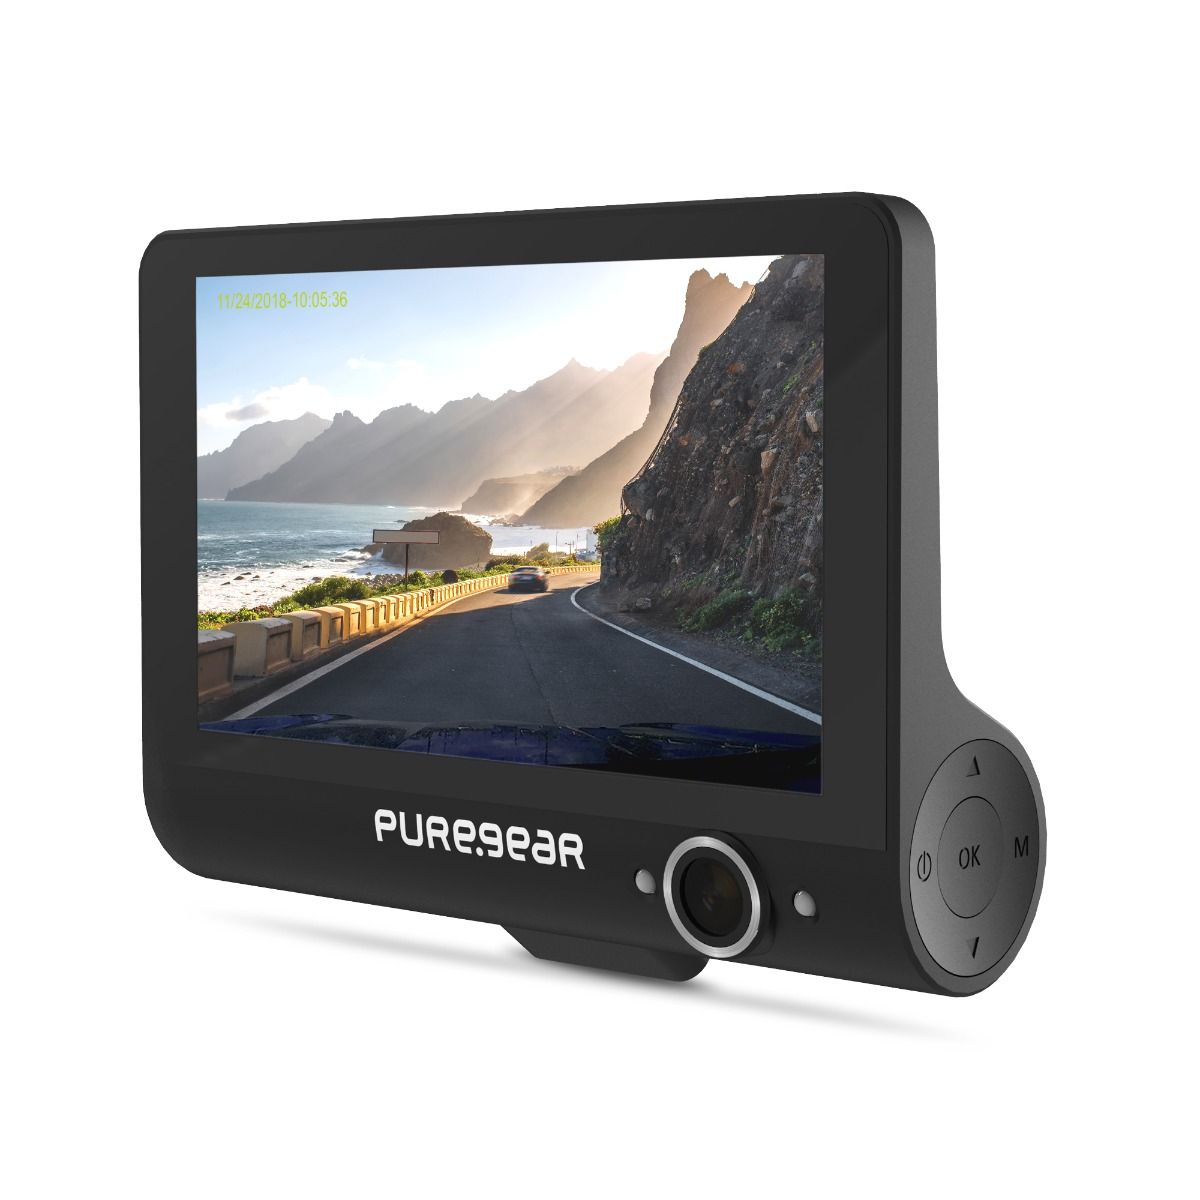 PureCam Connected Car Security System (16GB SD Card + FREE 3 Month 4G LTE Plan)